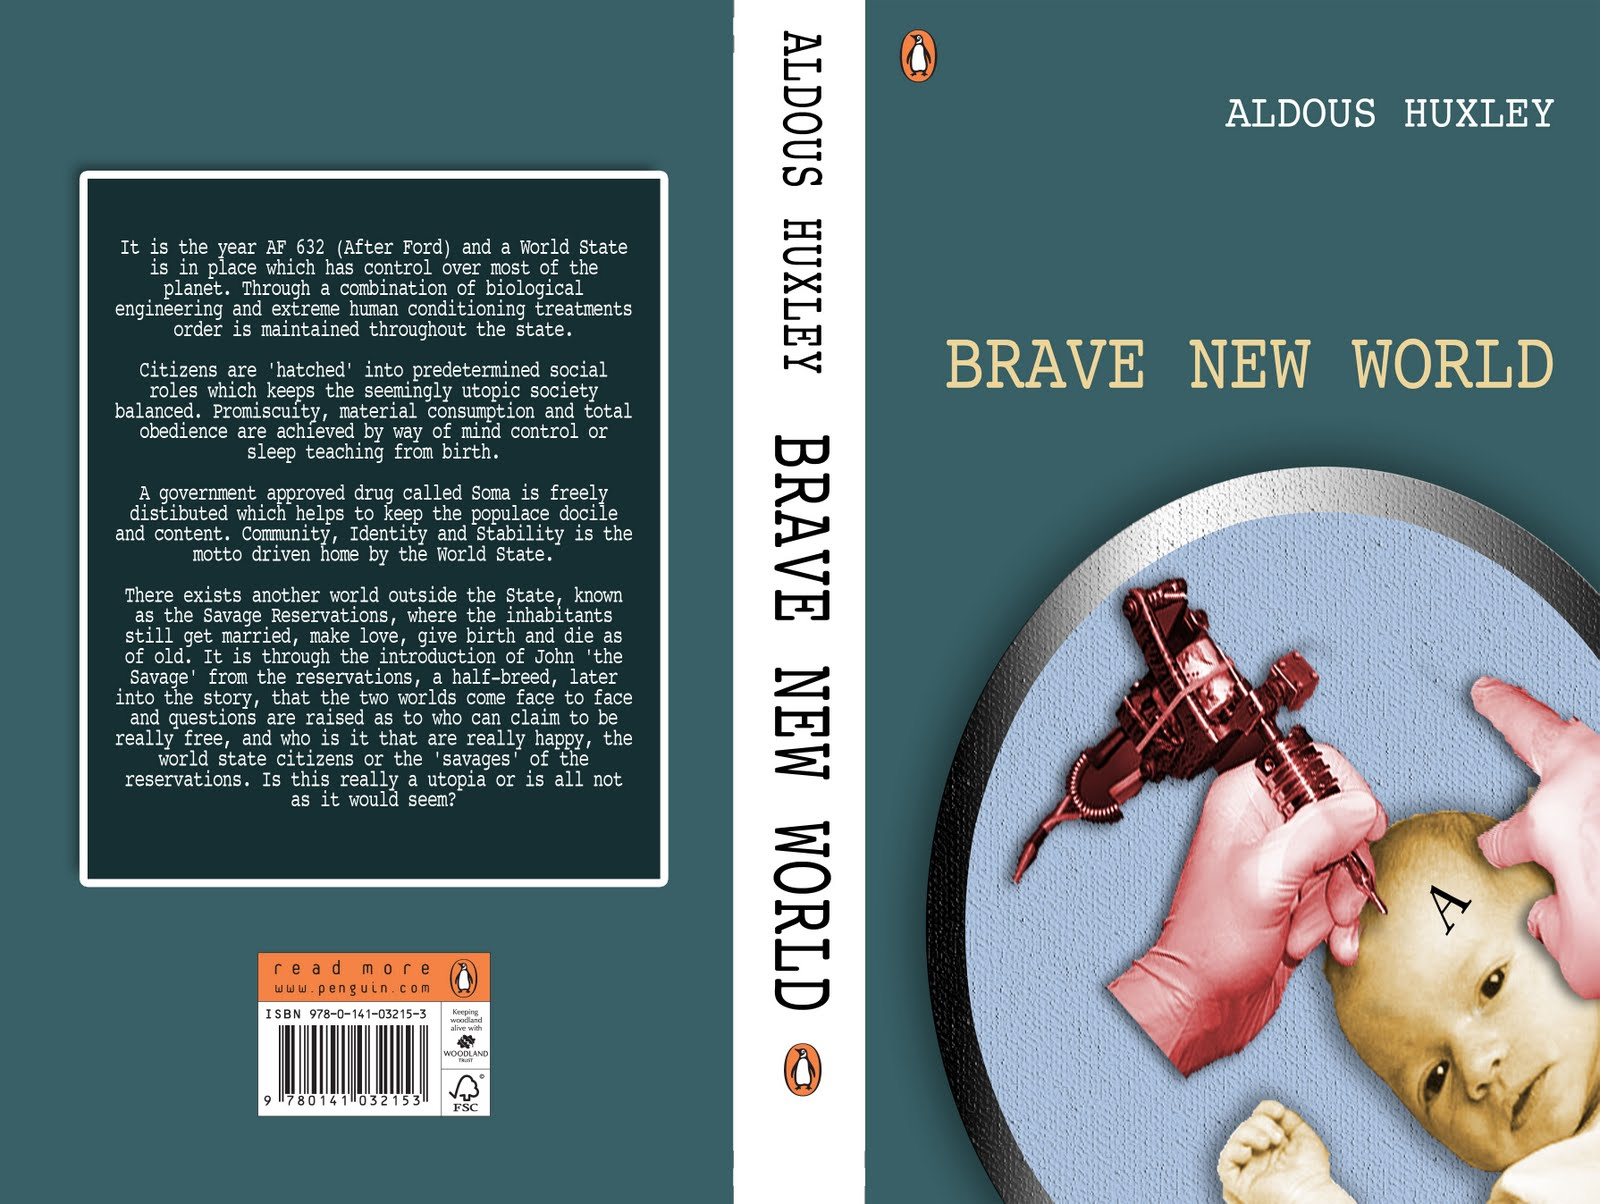 brave new world a shortened long form essay